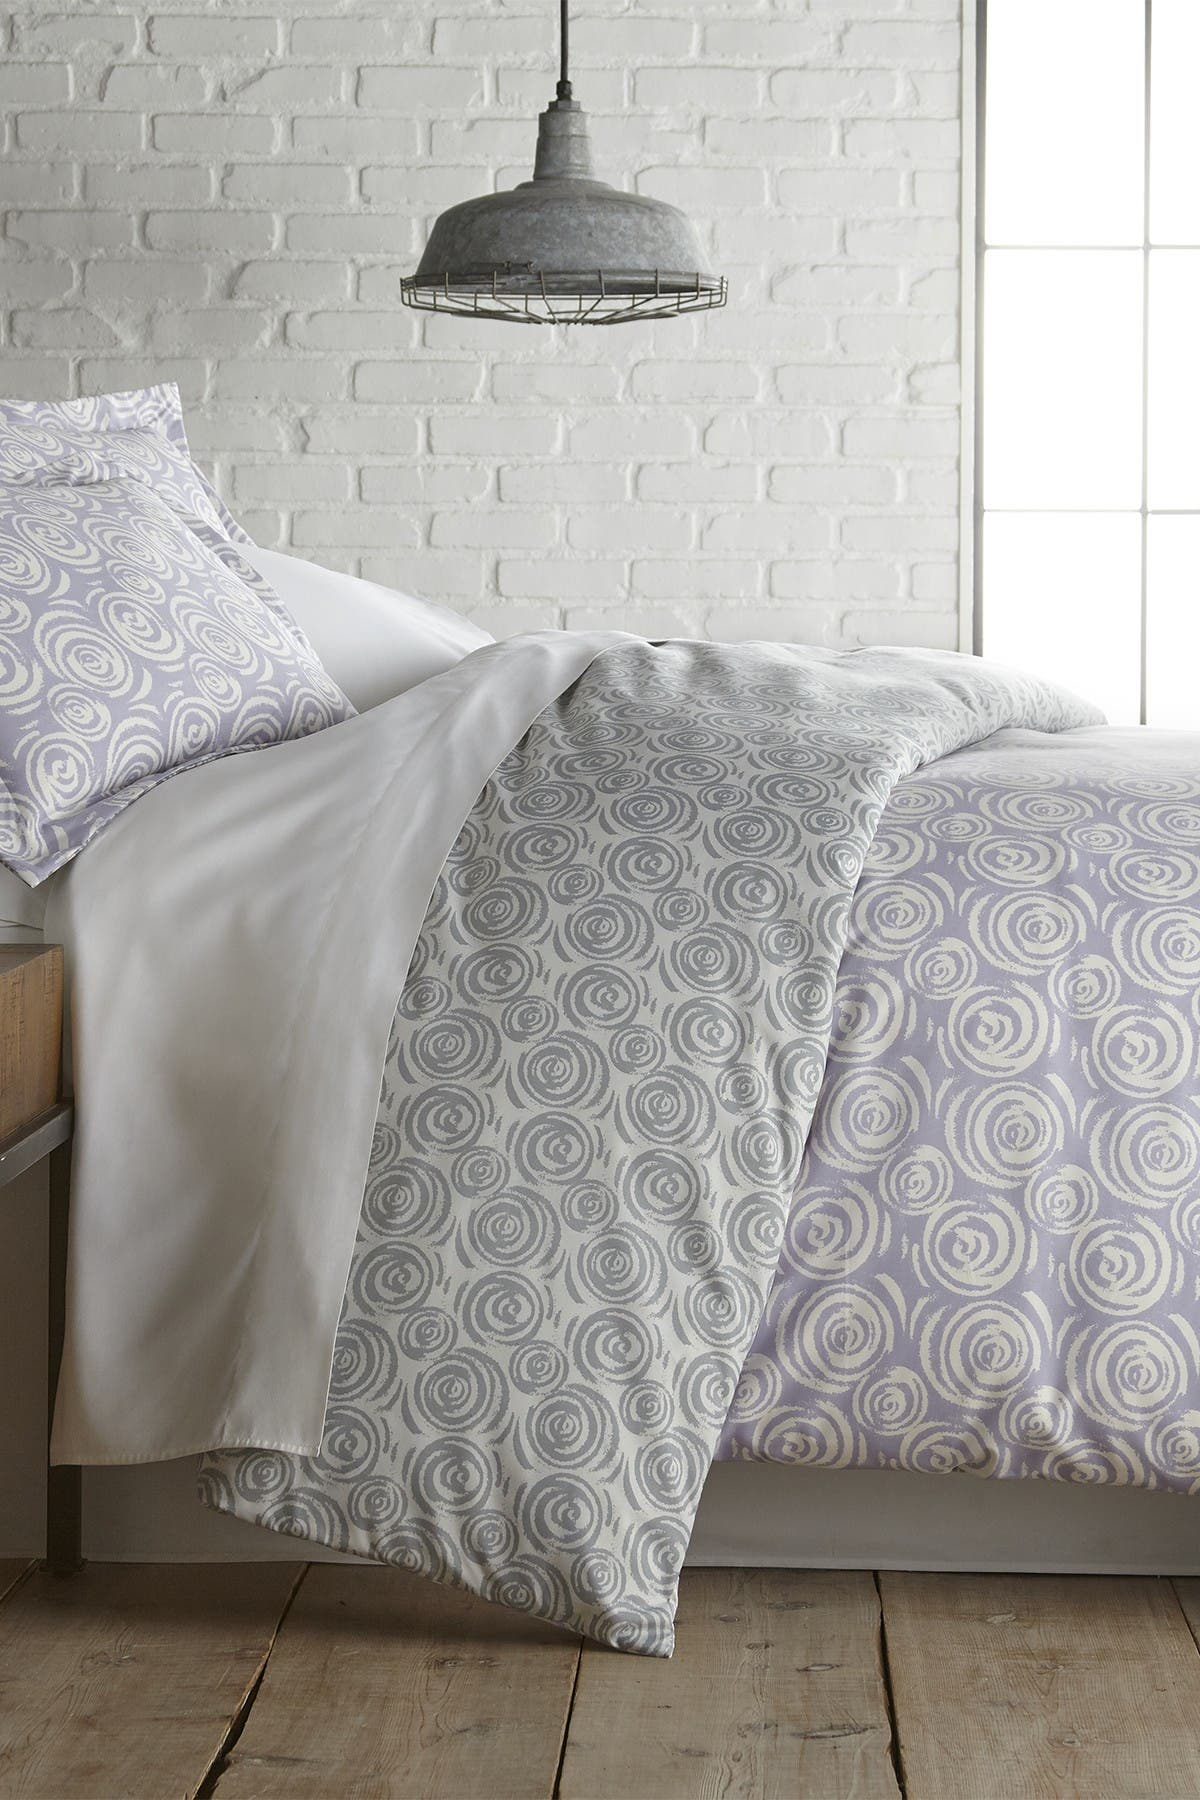 Image of SOUTHSHORE FINE LINENS Full/Queen Premium Collection Ultra-Soft Modern Duvet Cover Sets - Circles and Swirls Lavender